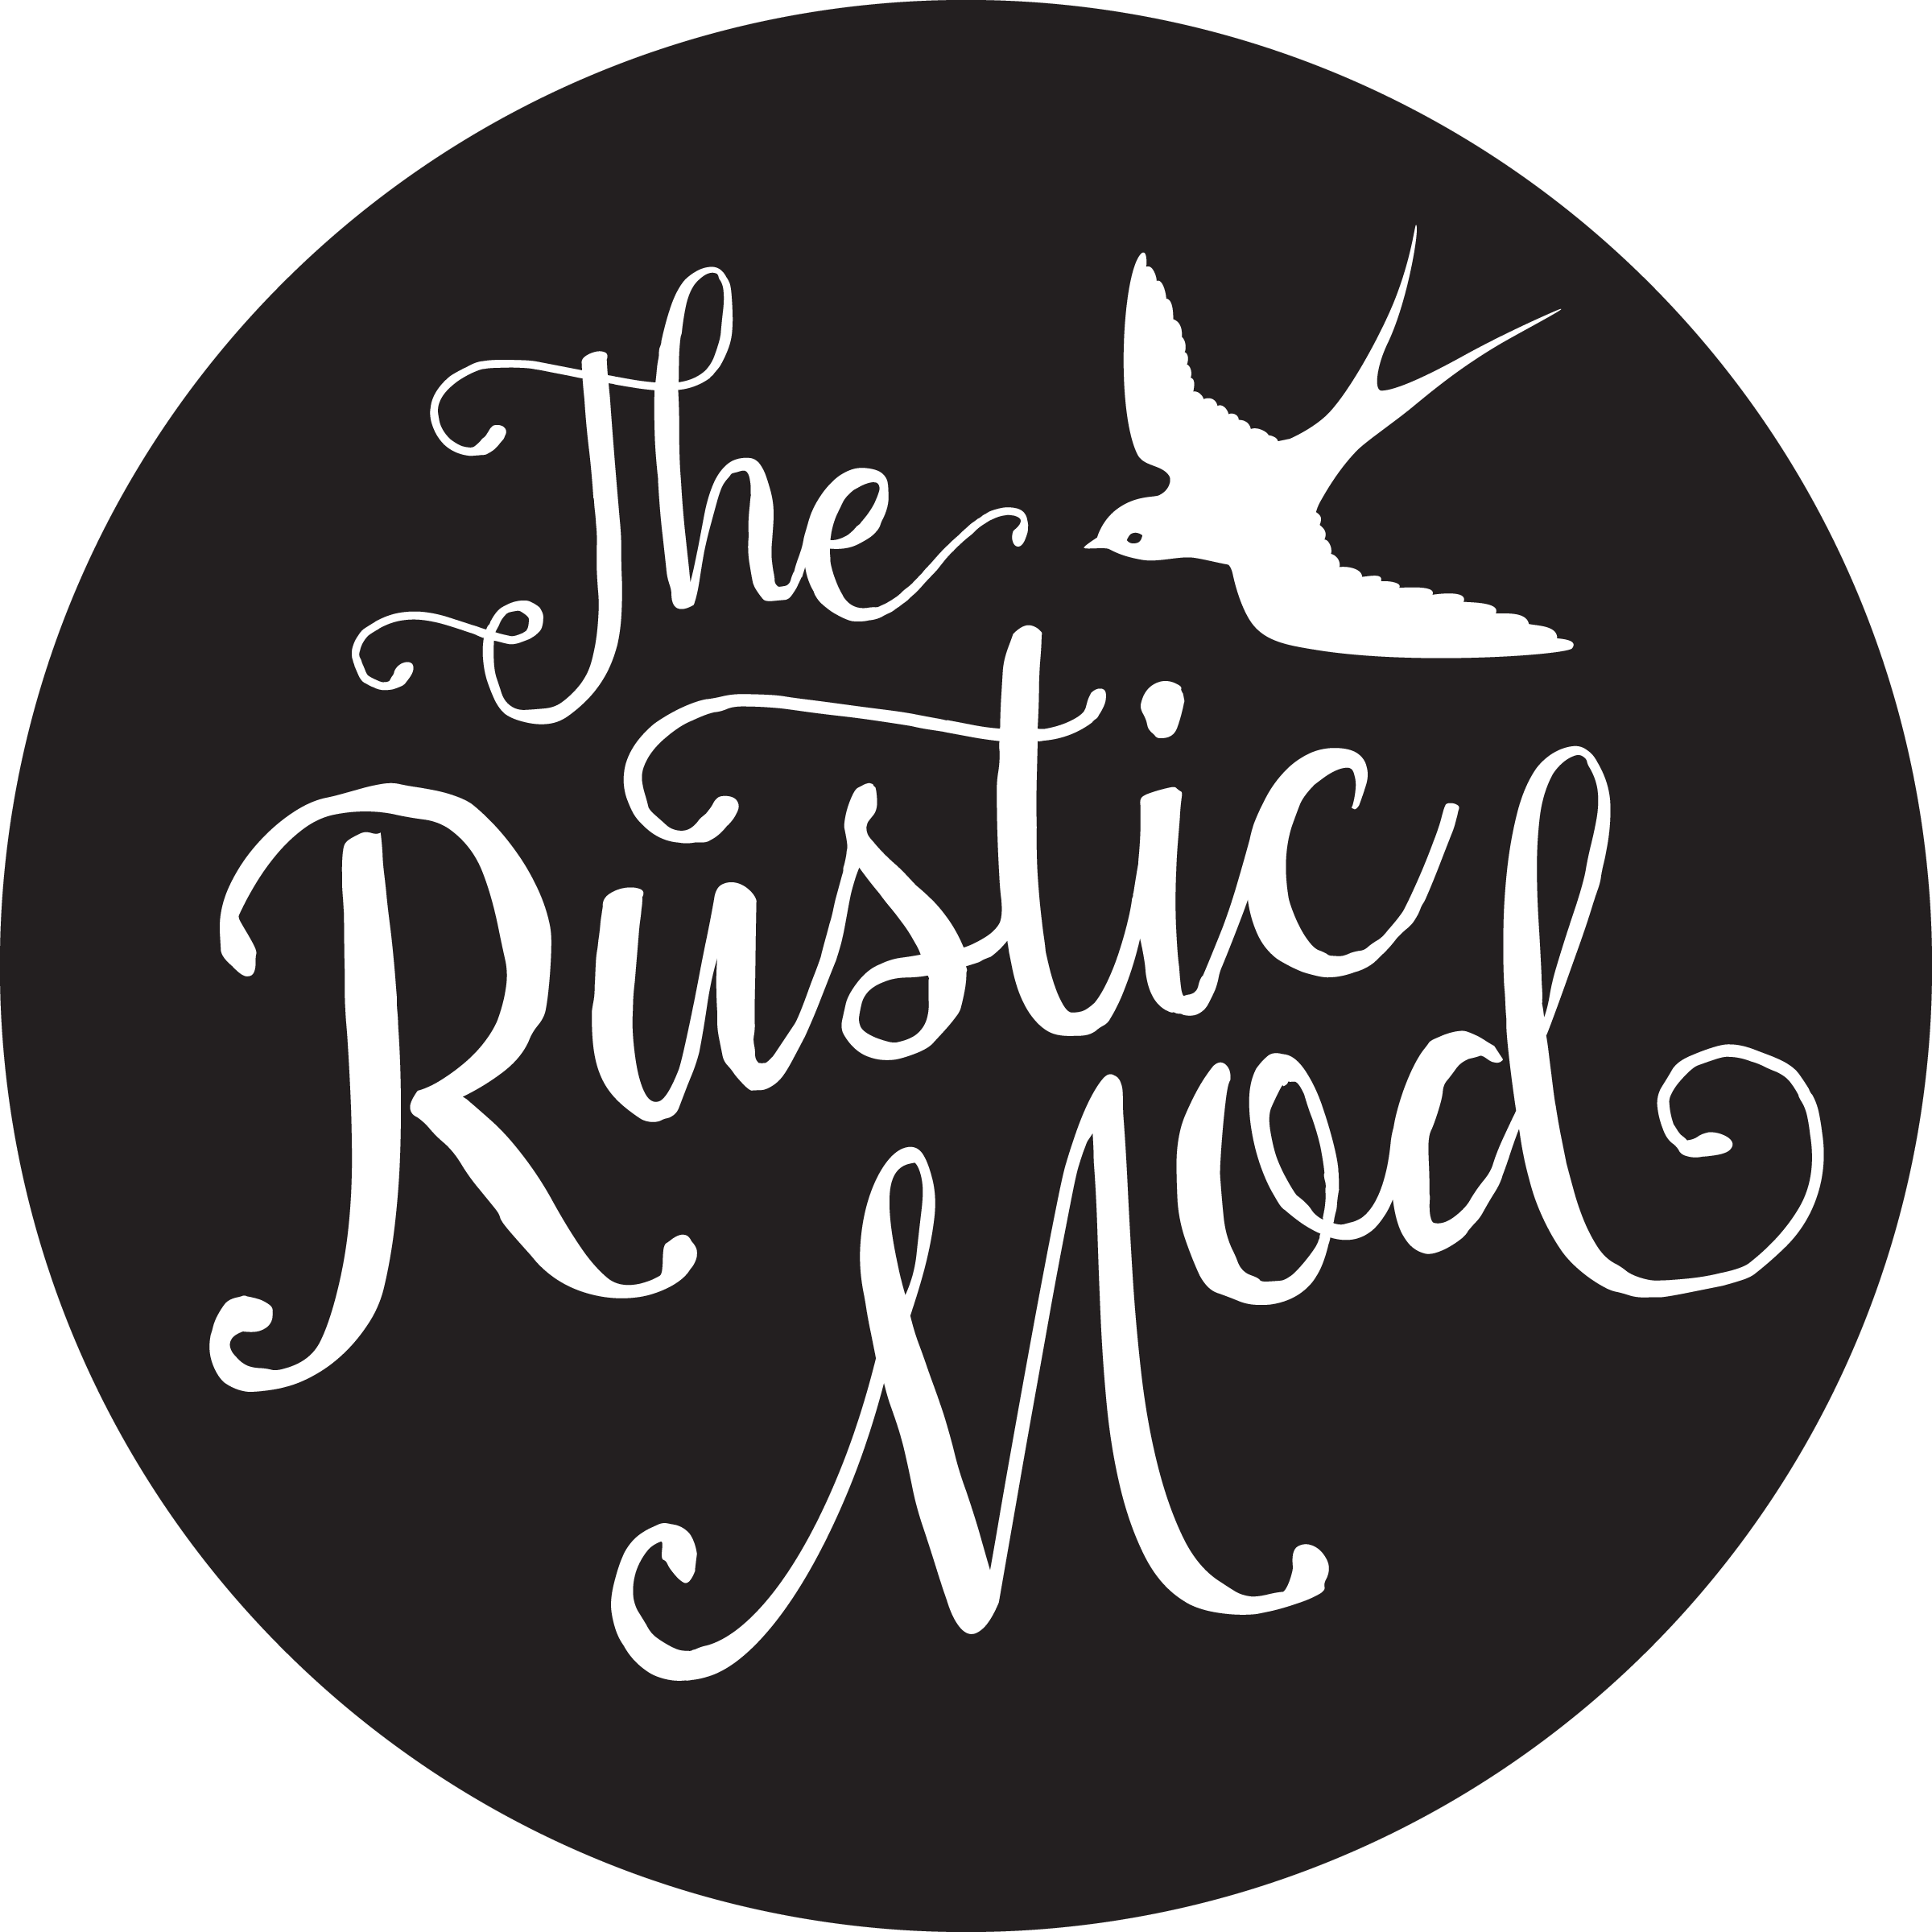 the_rustic_mod_logo_2400x2400.png